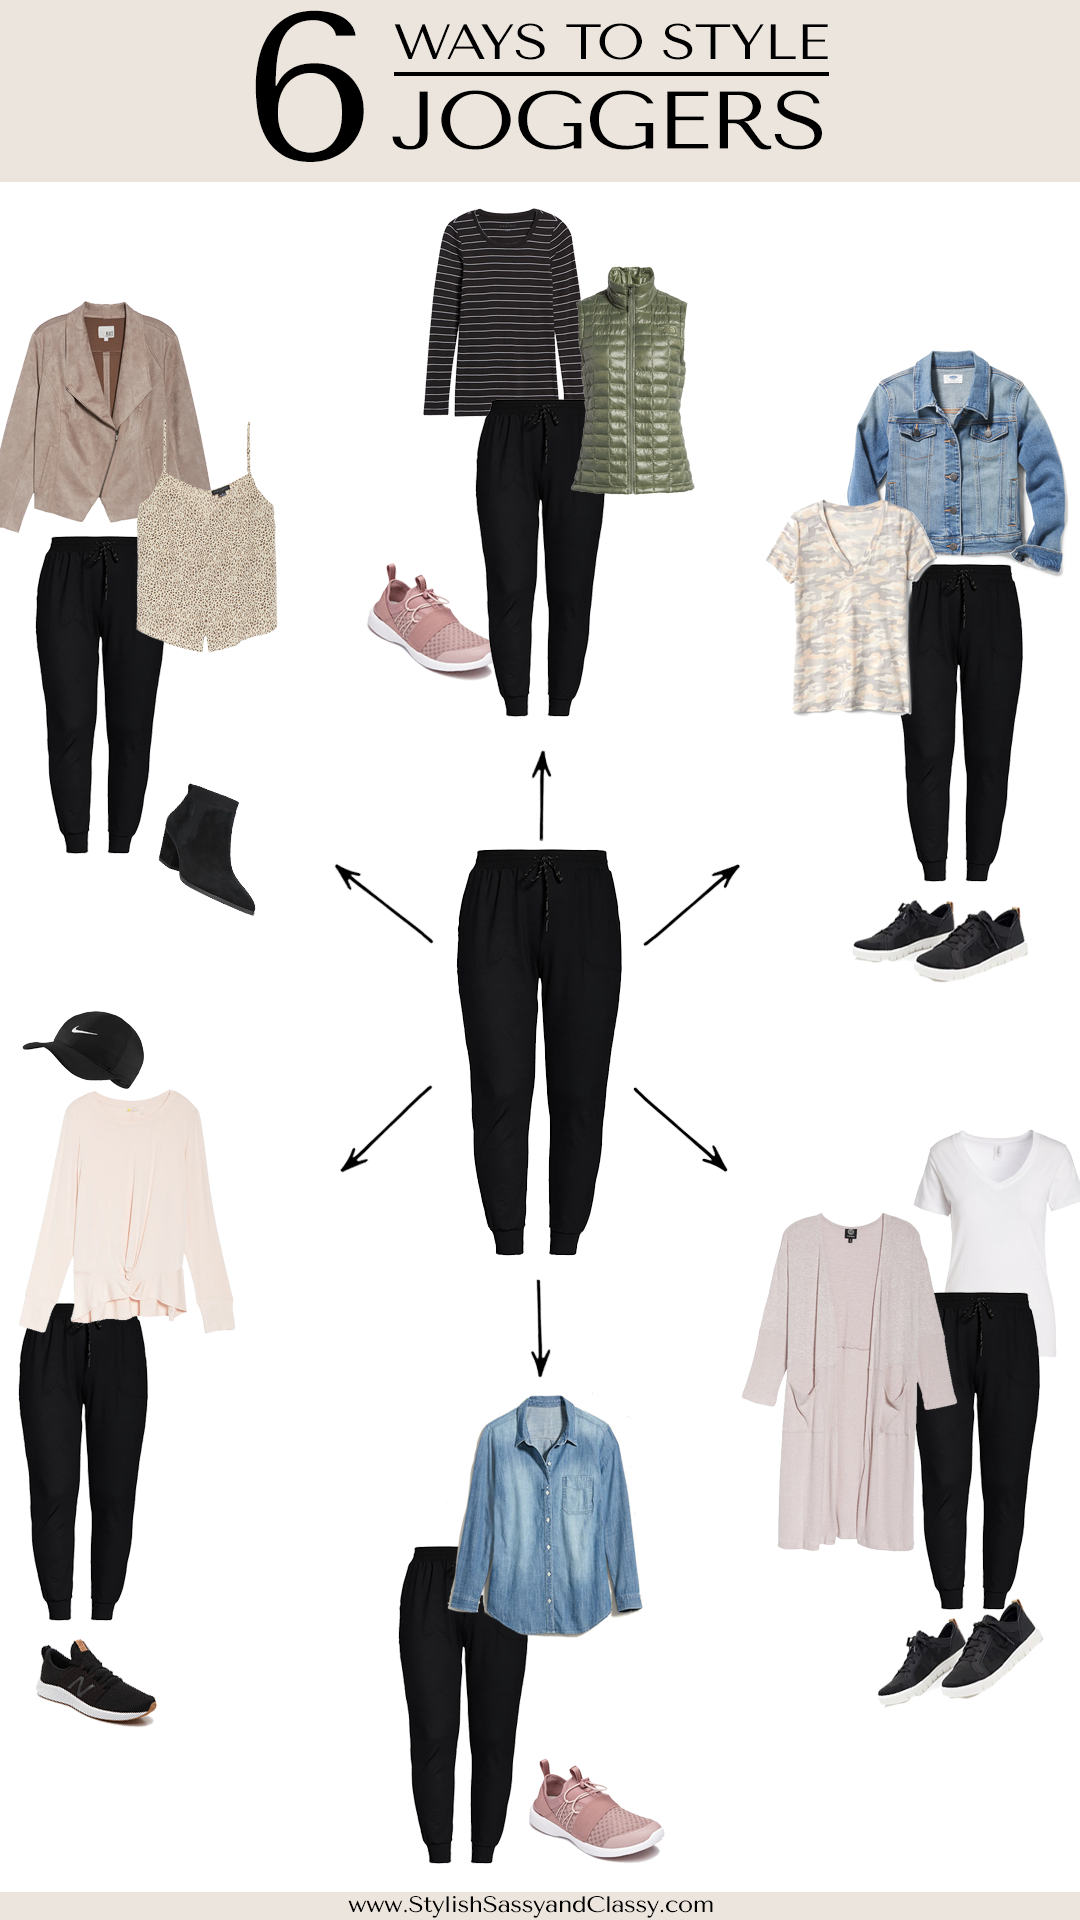 6 Ways To Style Joggers